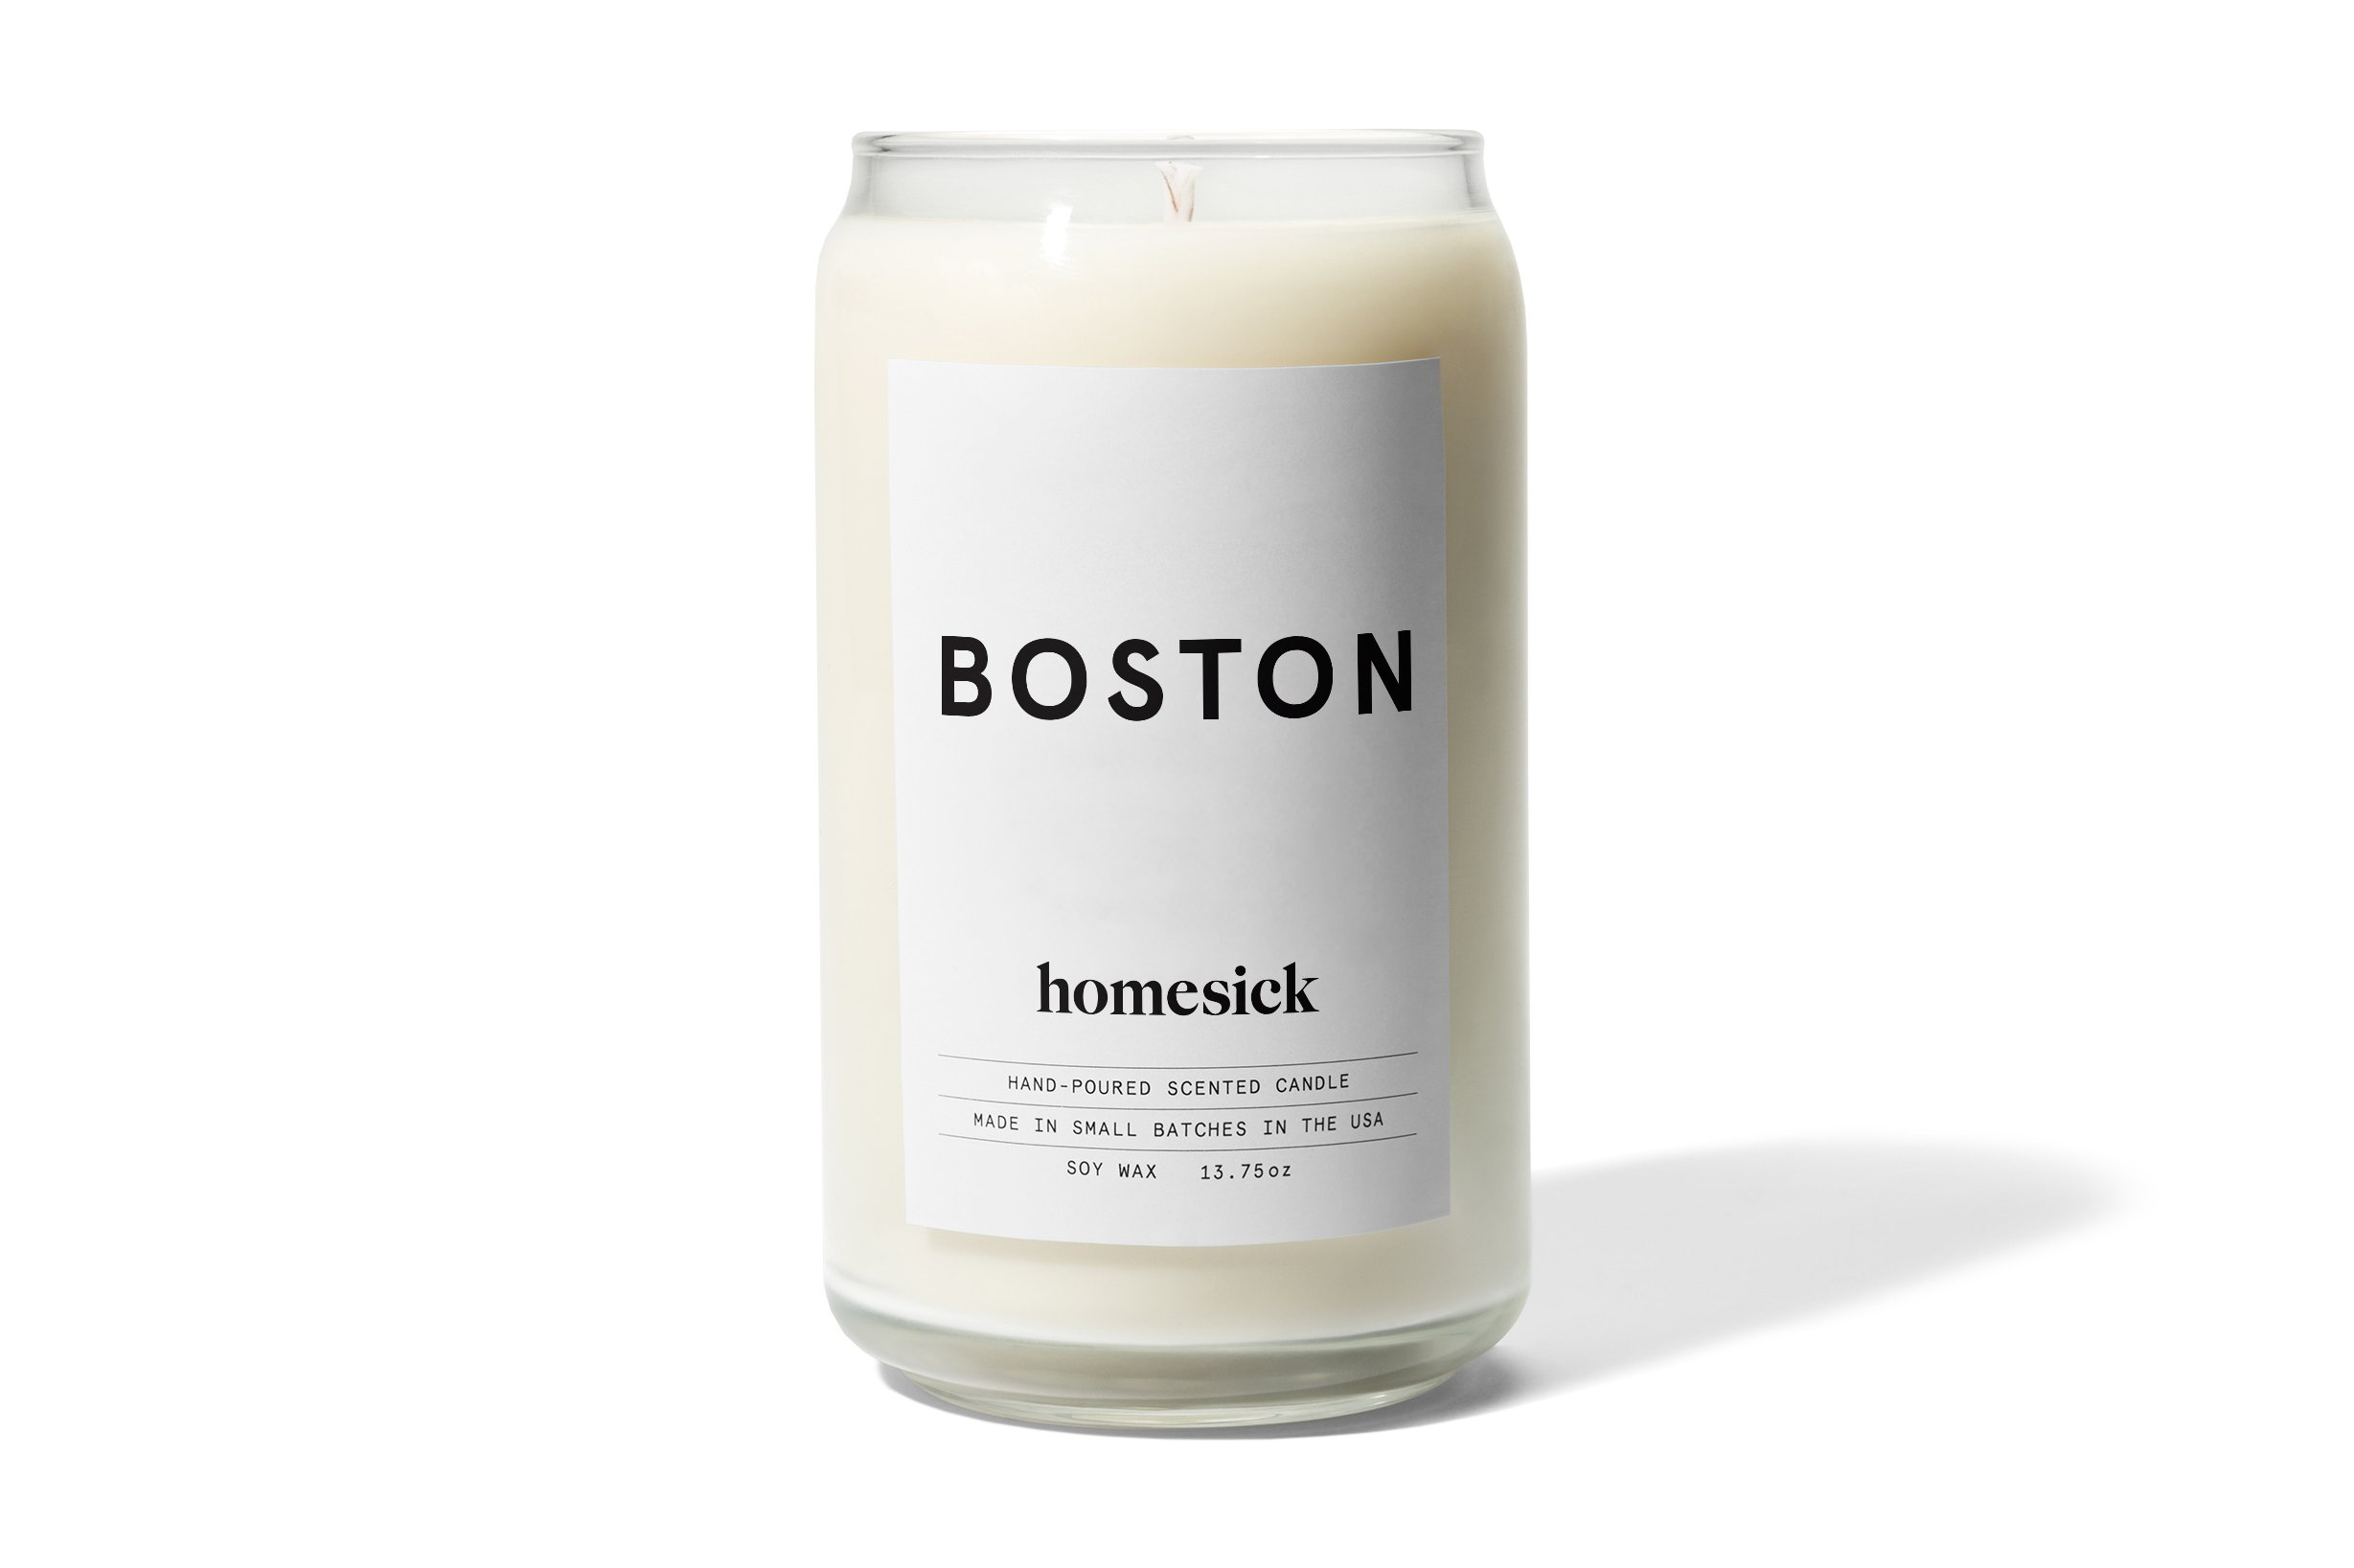 Homesick Scented Candle, Boston - Smells like spiced tea with nutmeg, cinnamon and clove; orange citrus and ginger with notes of vanilla sugar recollect memories of the City on a Hill 60-80 hour burn time All natural soy wax - living-room-decor, living-room, candles - 61H5hAC15RL -